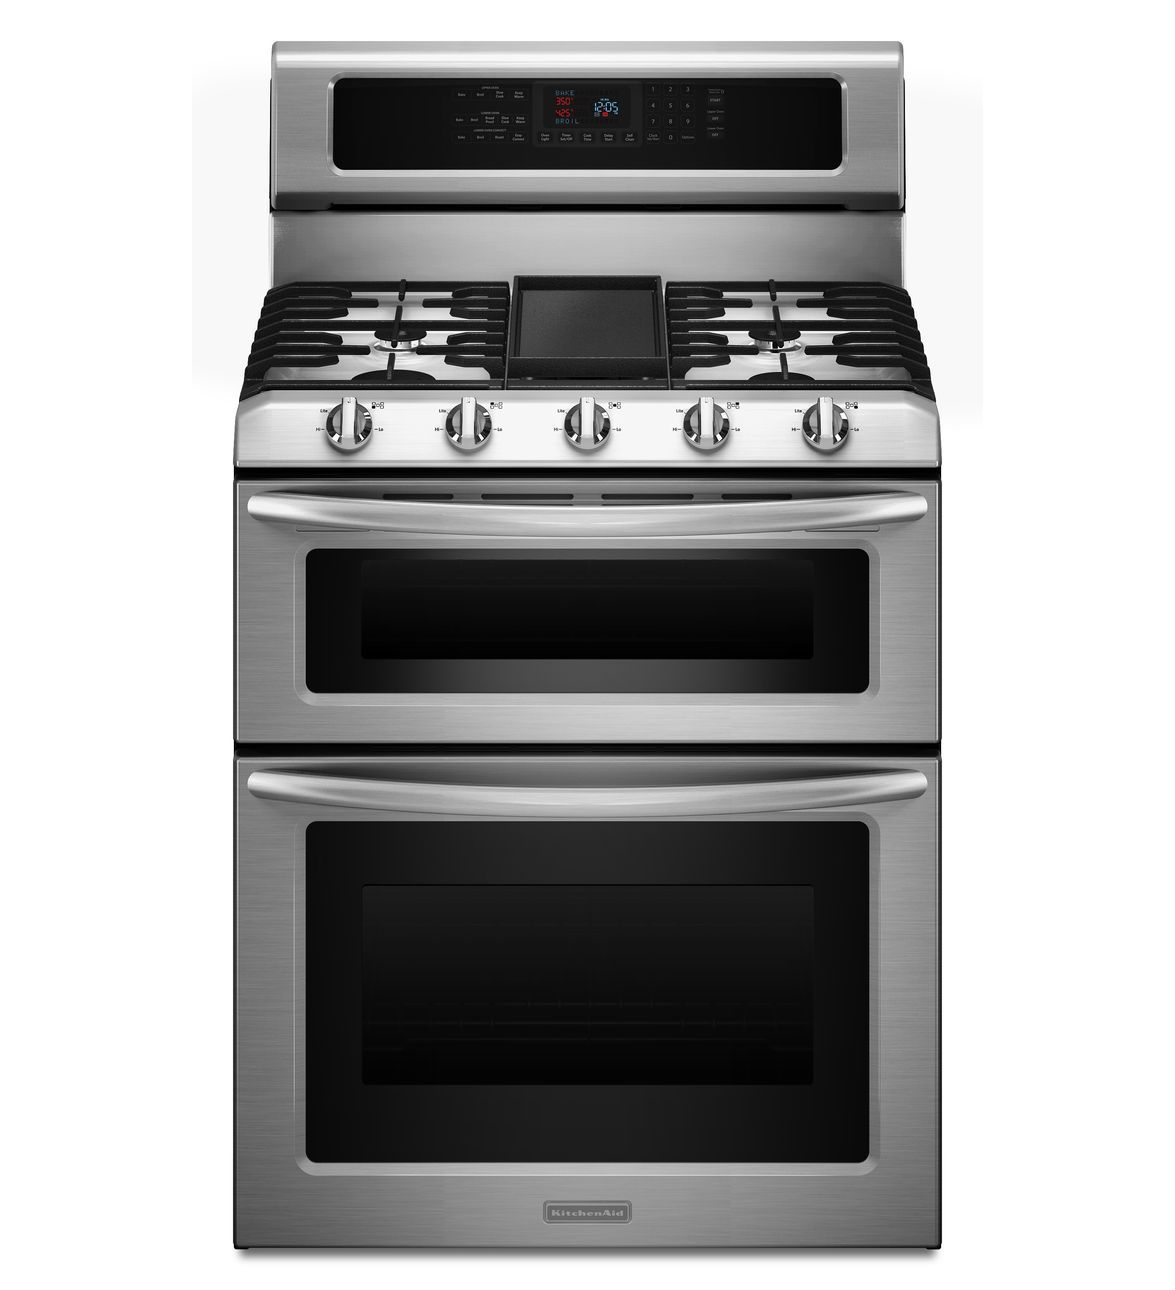 KitchenAid® Freestanding Double Oven Range with Even-Heat™ Convection